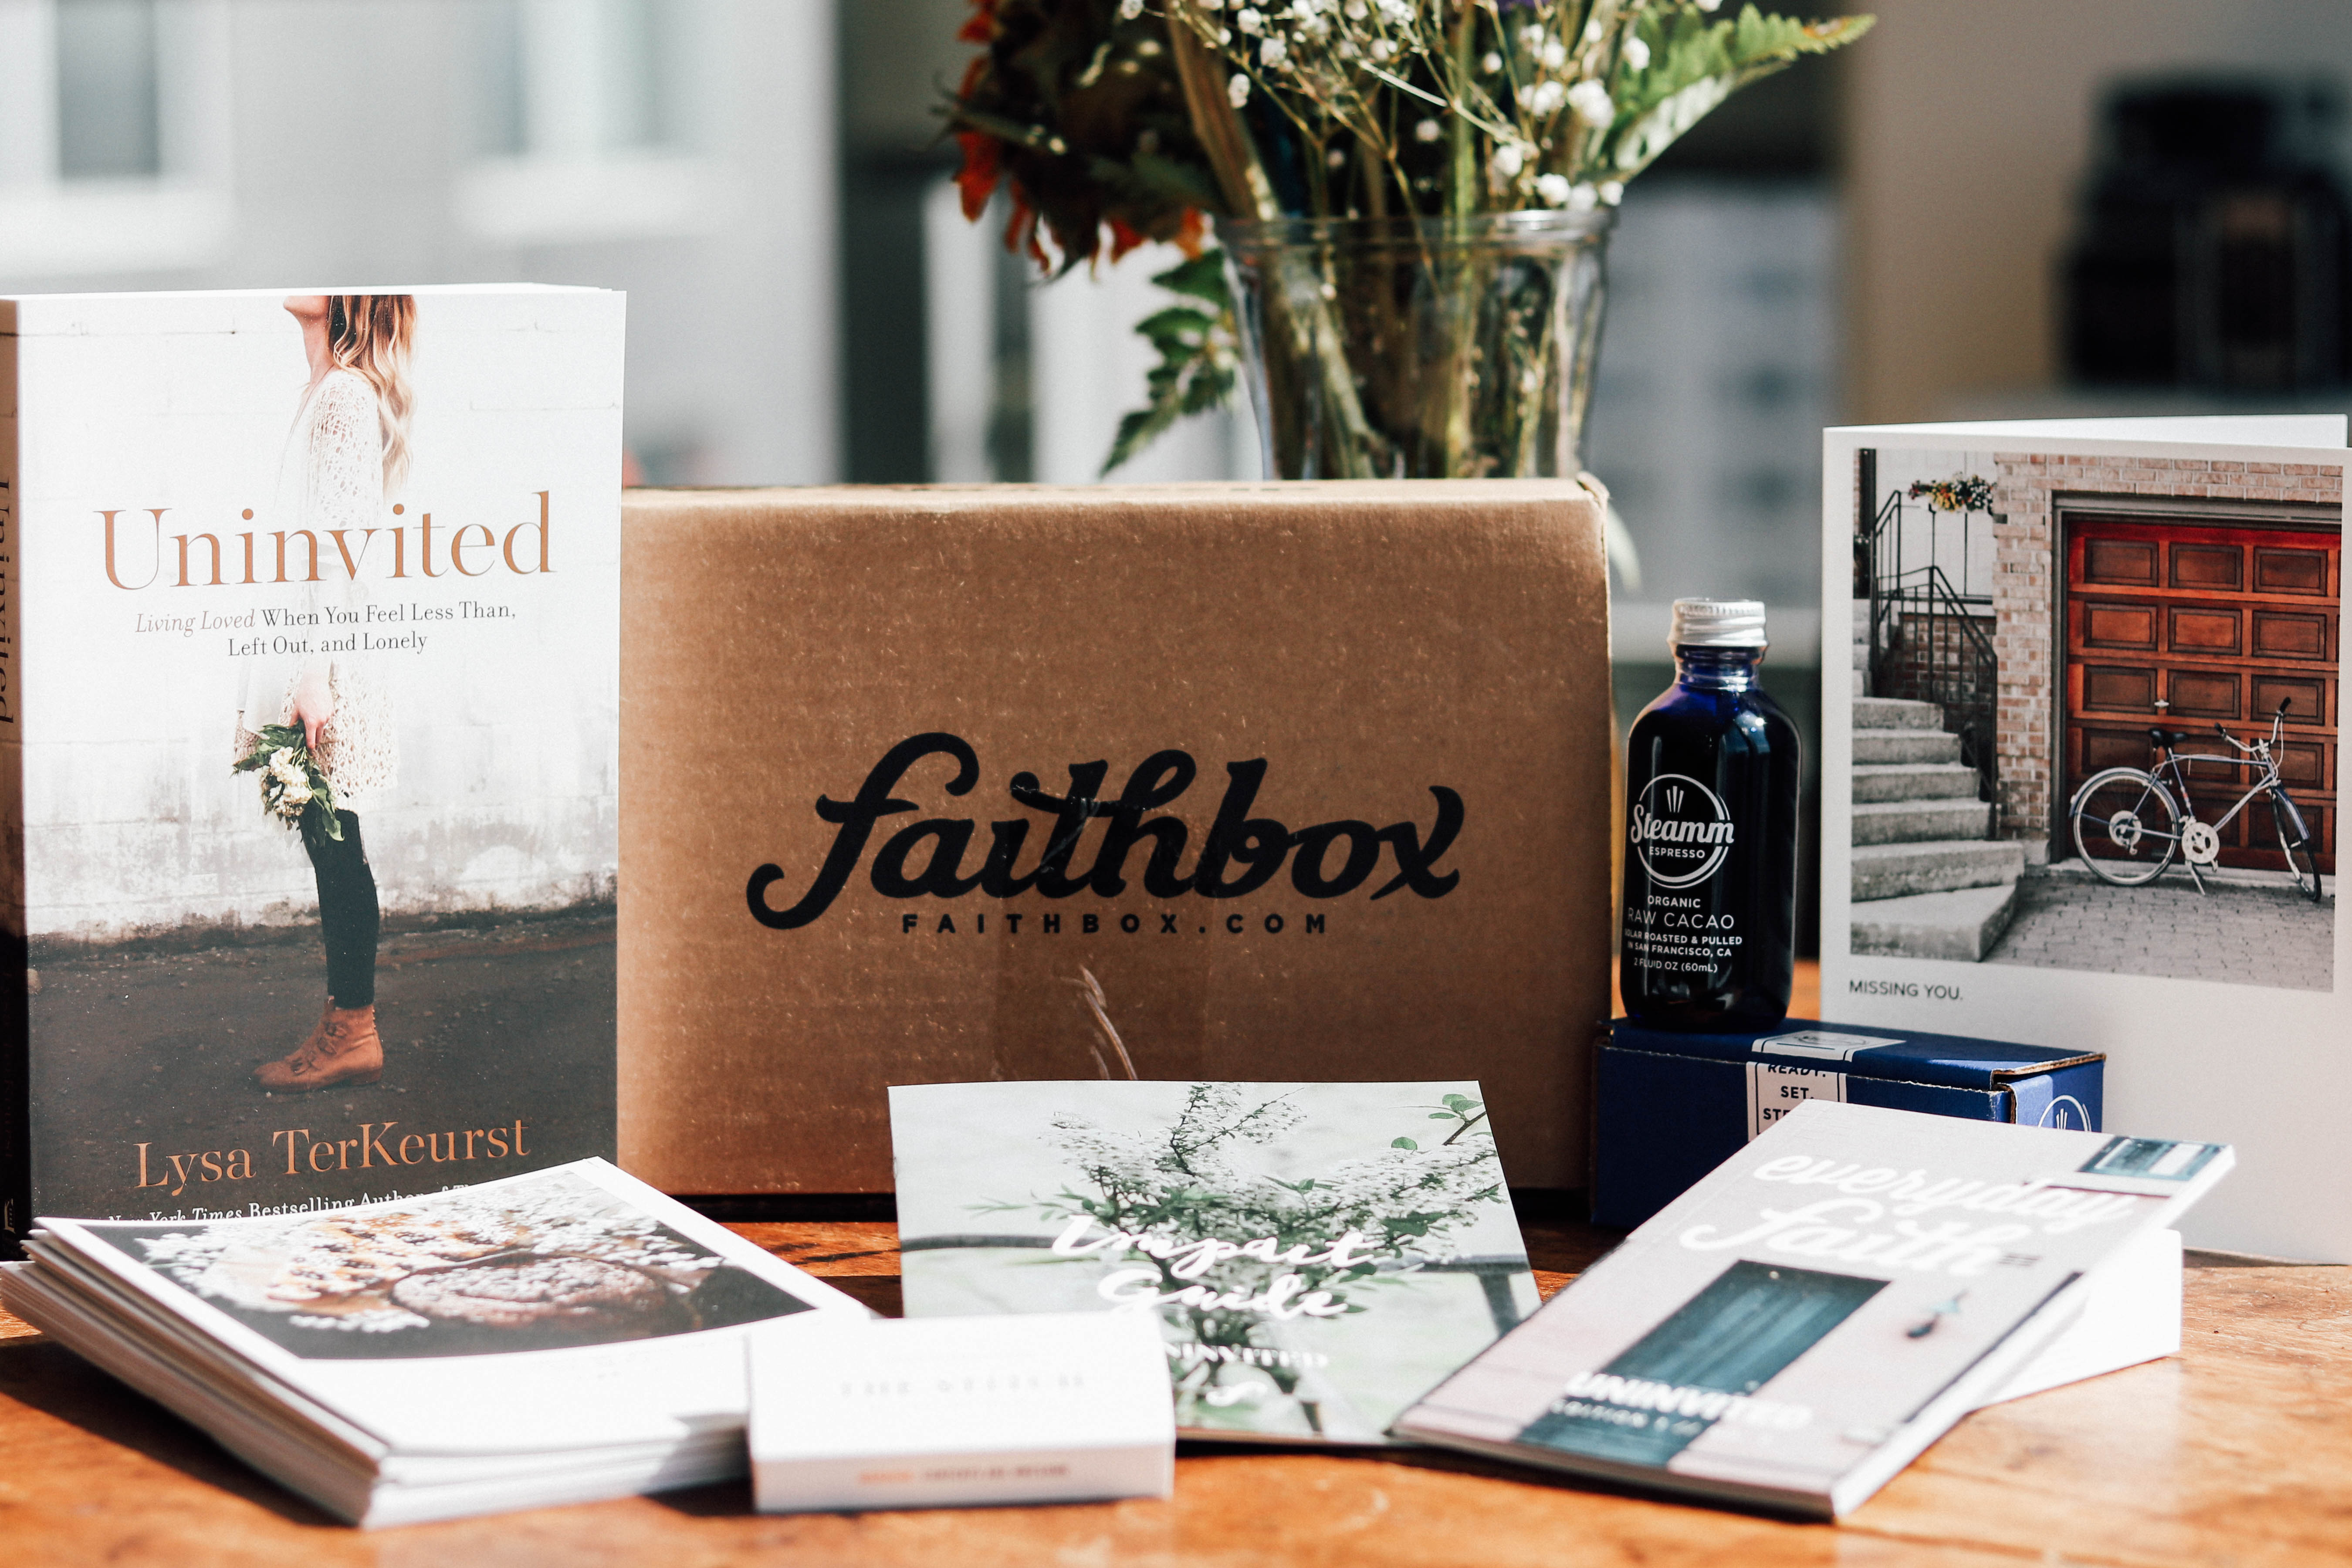 Faithbox 3 Month Subscription